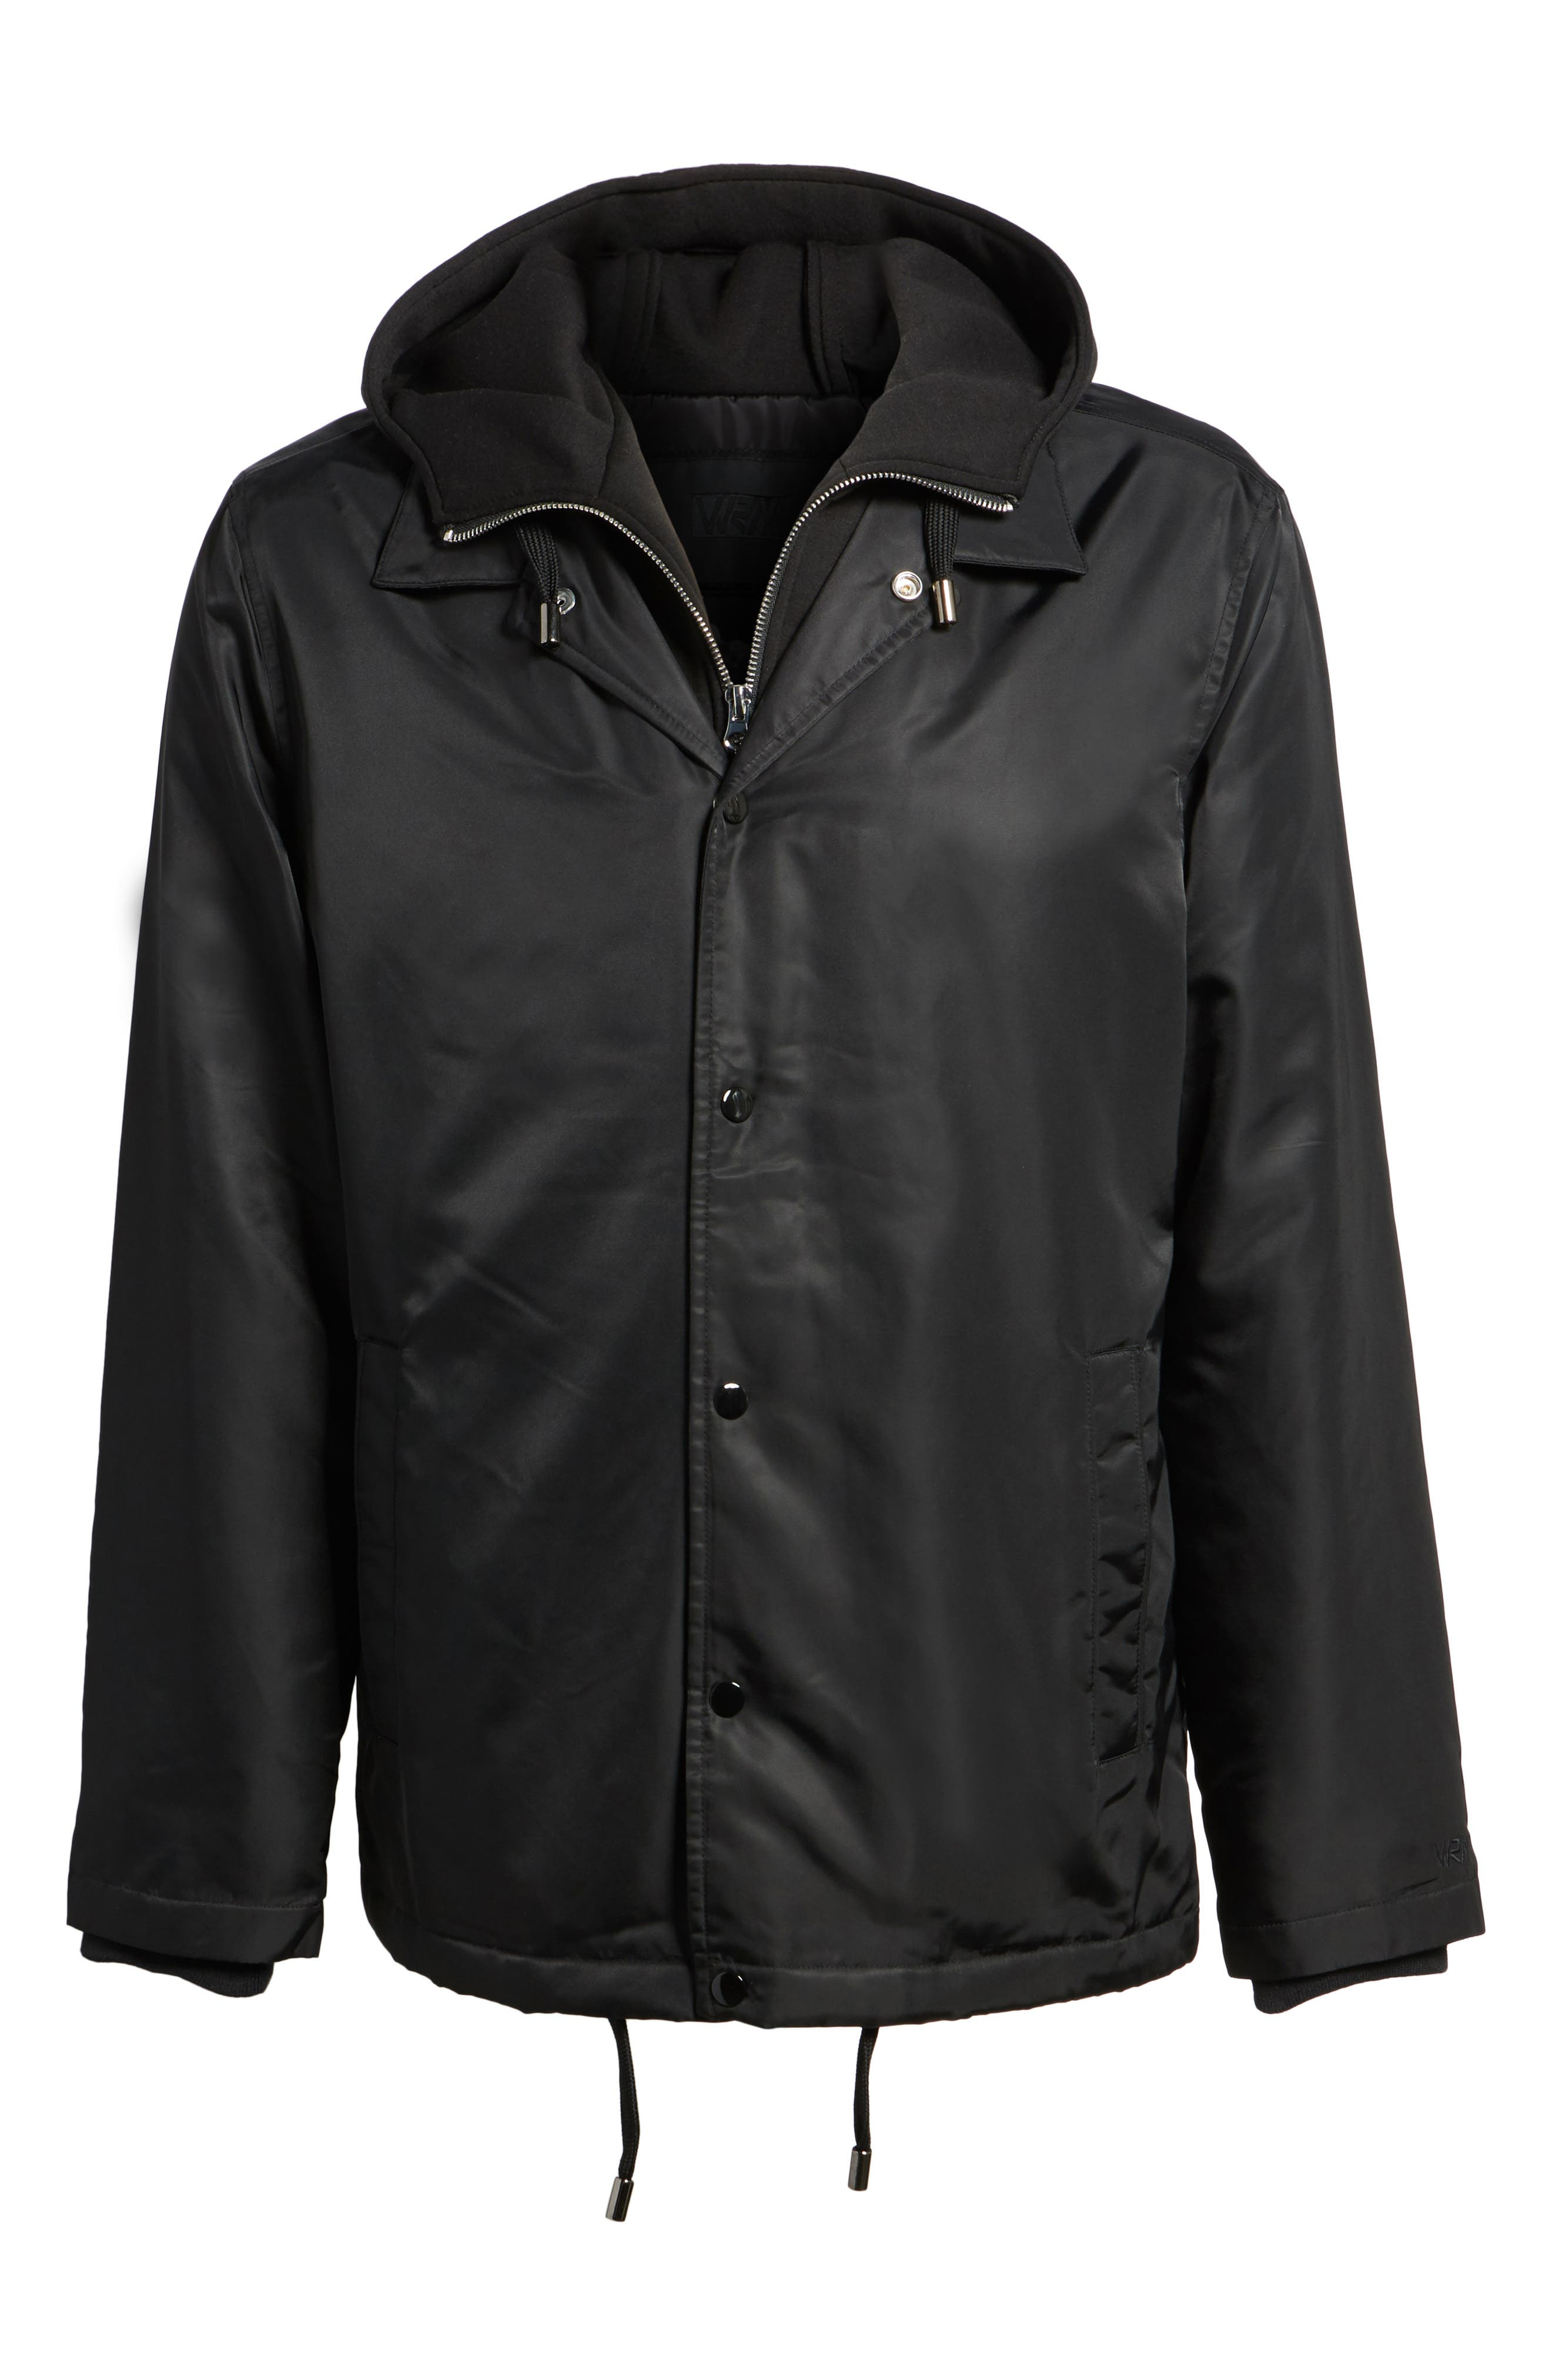 Yorkshire Hooded Coach's Jacket,                             Alternate thumbnail 5, color,                             001